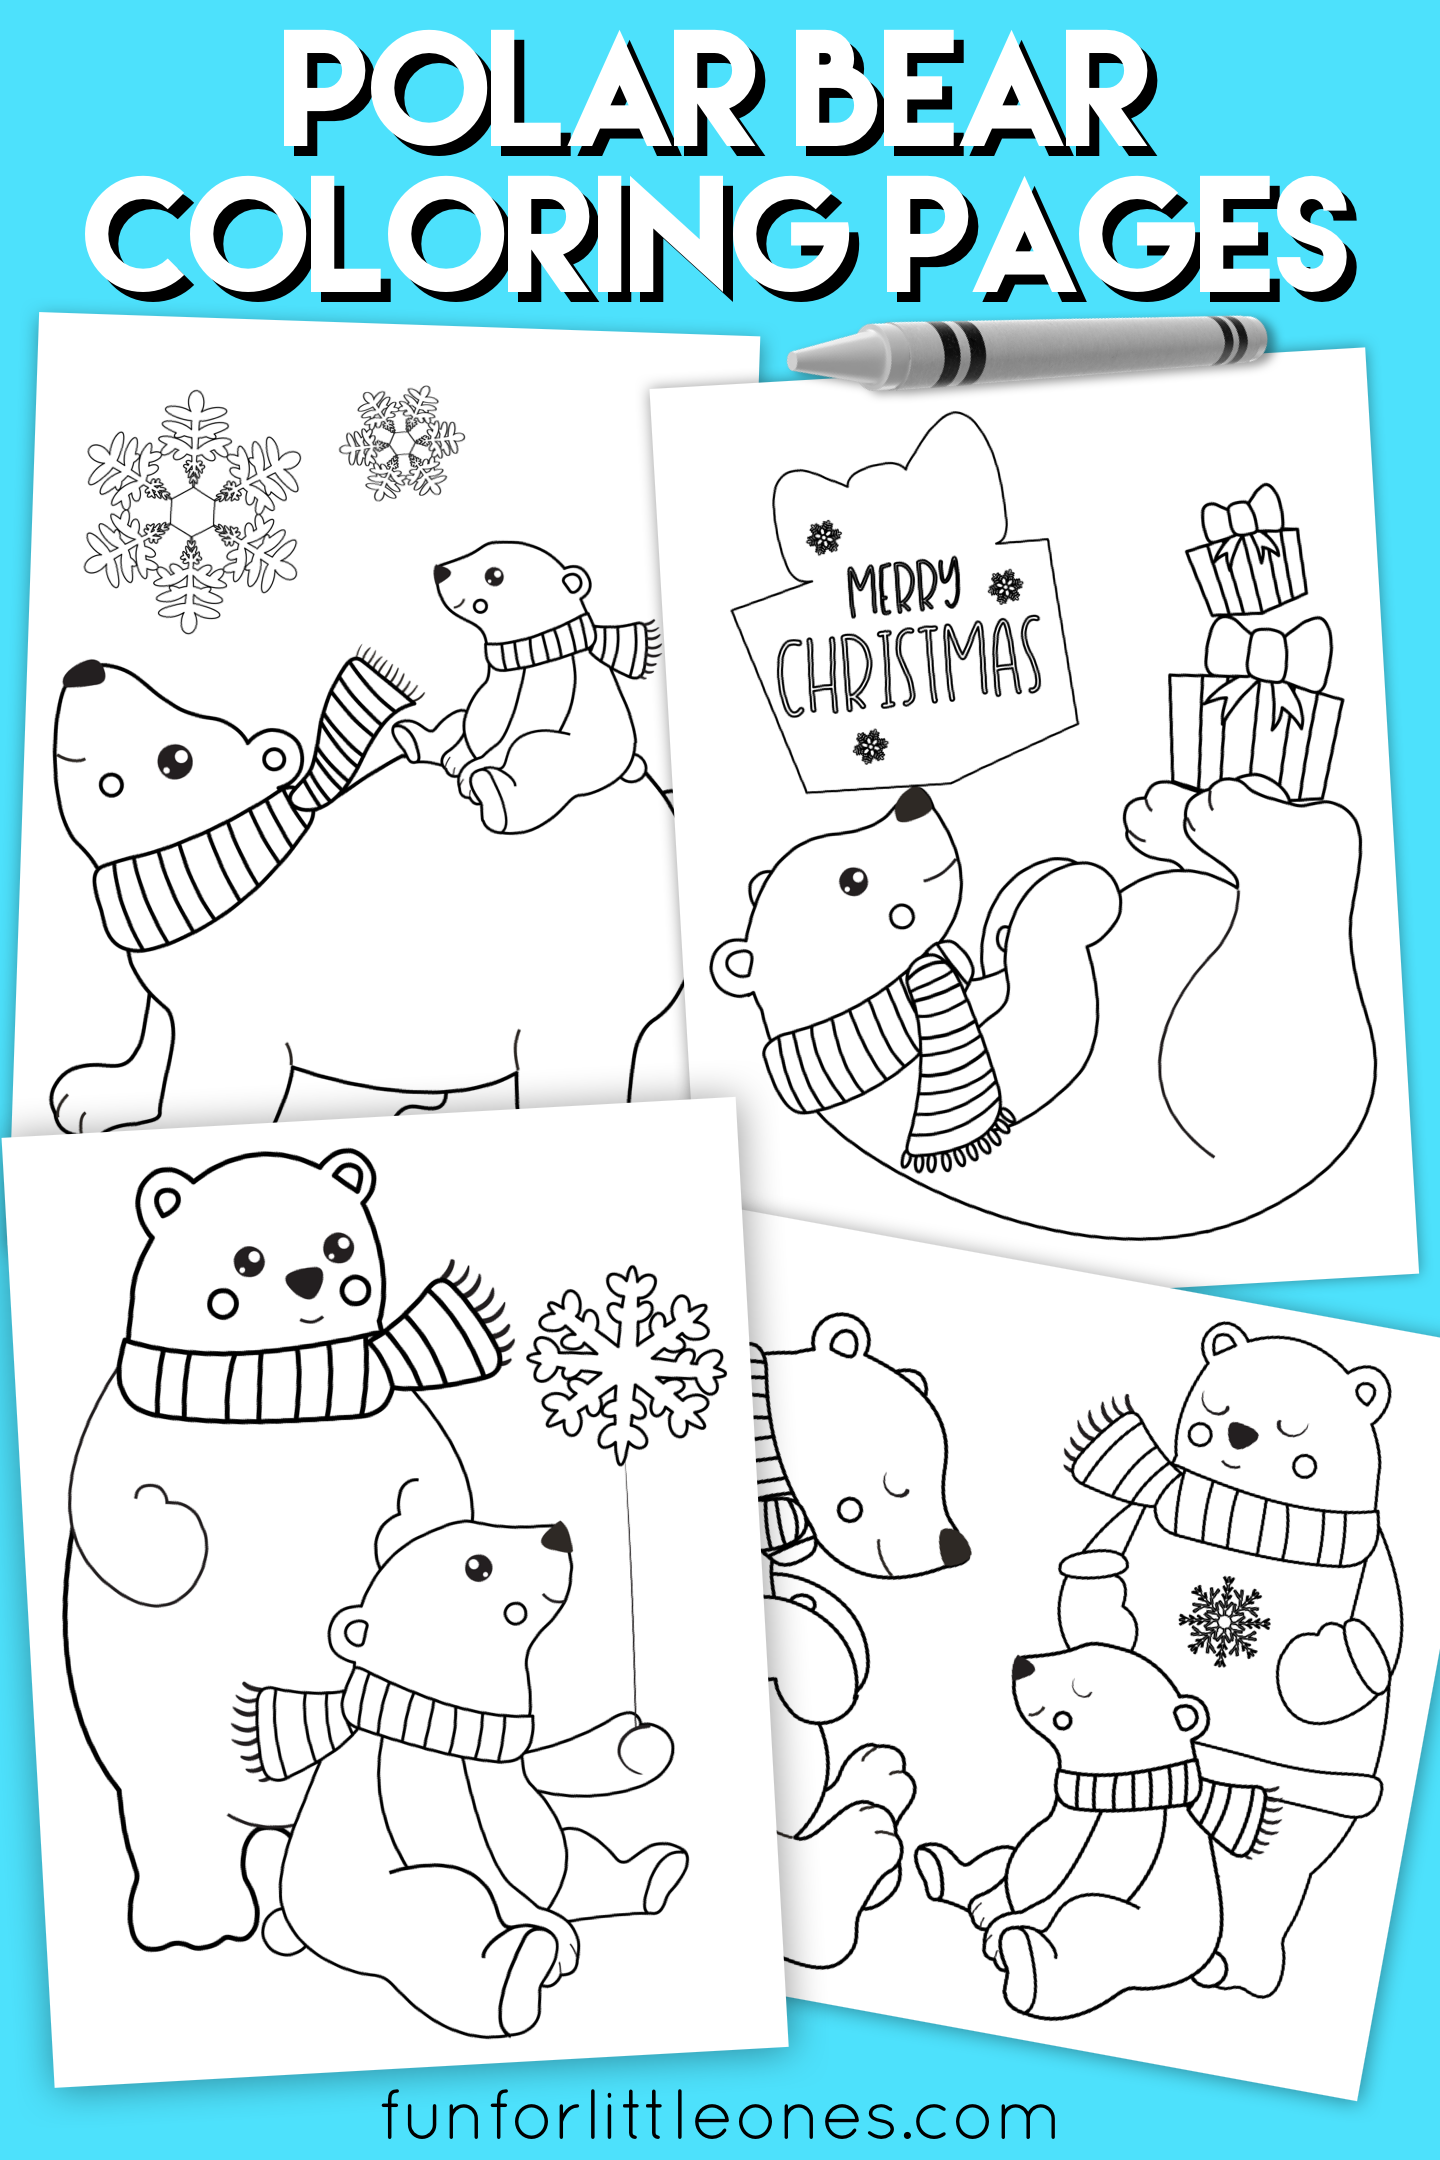 Polar Bear Holiday Coloring Pages For Kids Free Printable